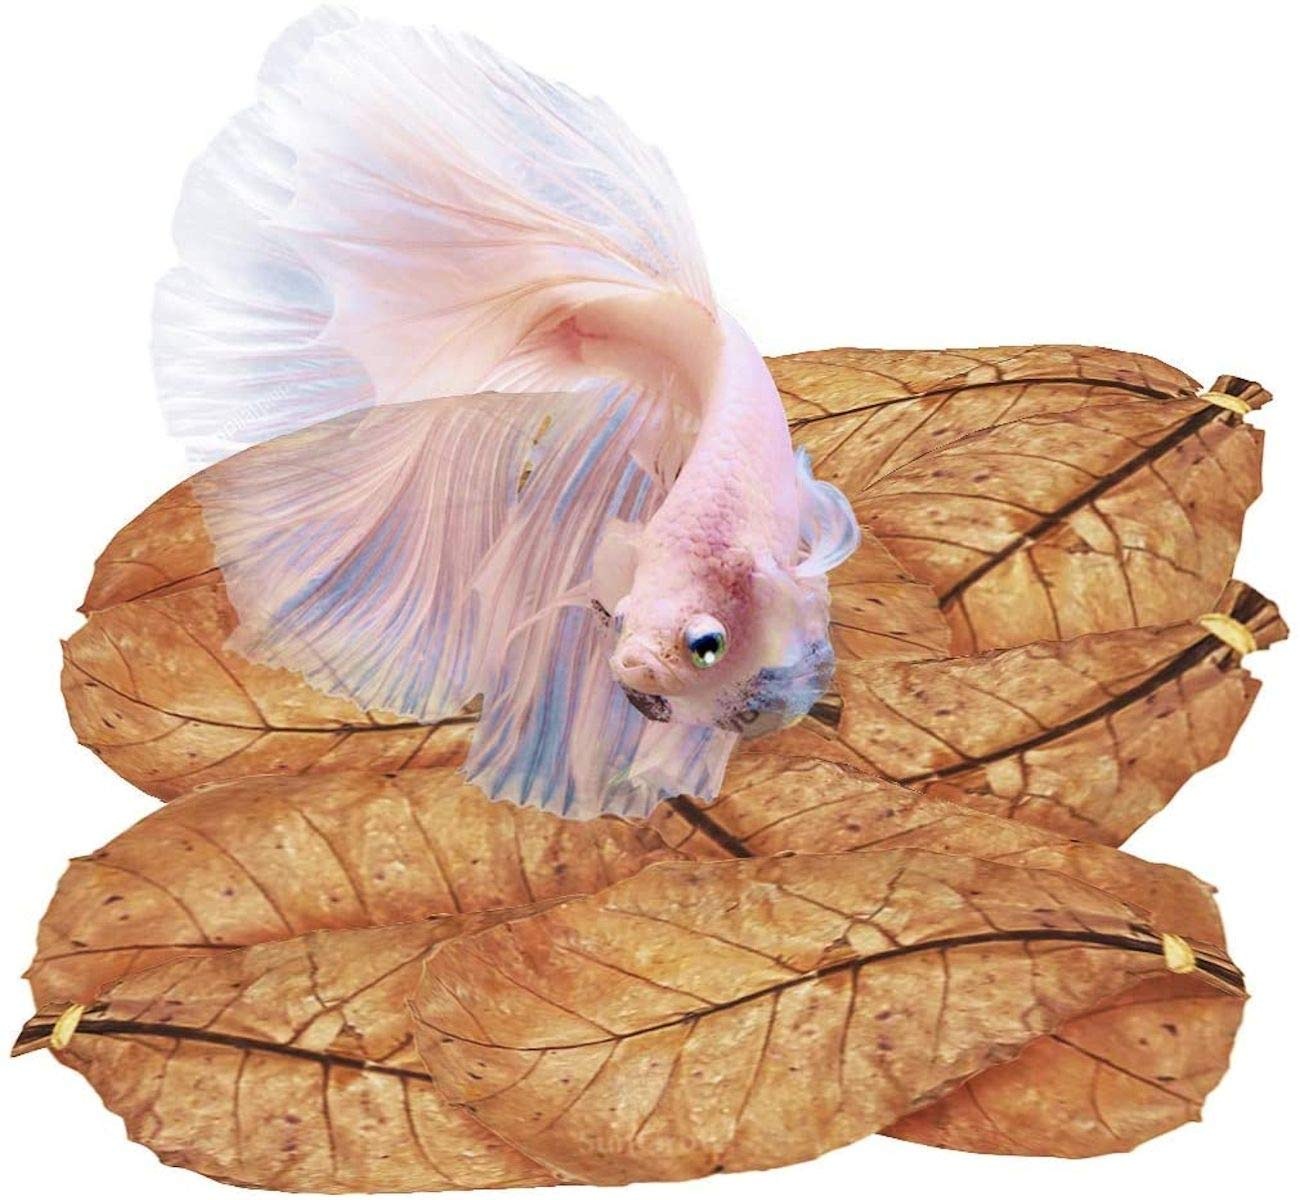 SunGrow Catappa Leaves, 7-Inches, Keep Betta and Other Aquarium Pets Healthy, Indian Almond Leaf Acts as Water Conditioner, Helps with Fish Fin Color Improvement, 10 Leaves per Pack